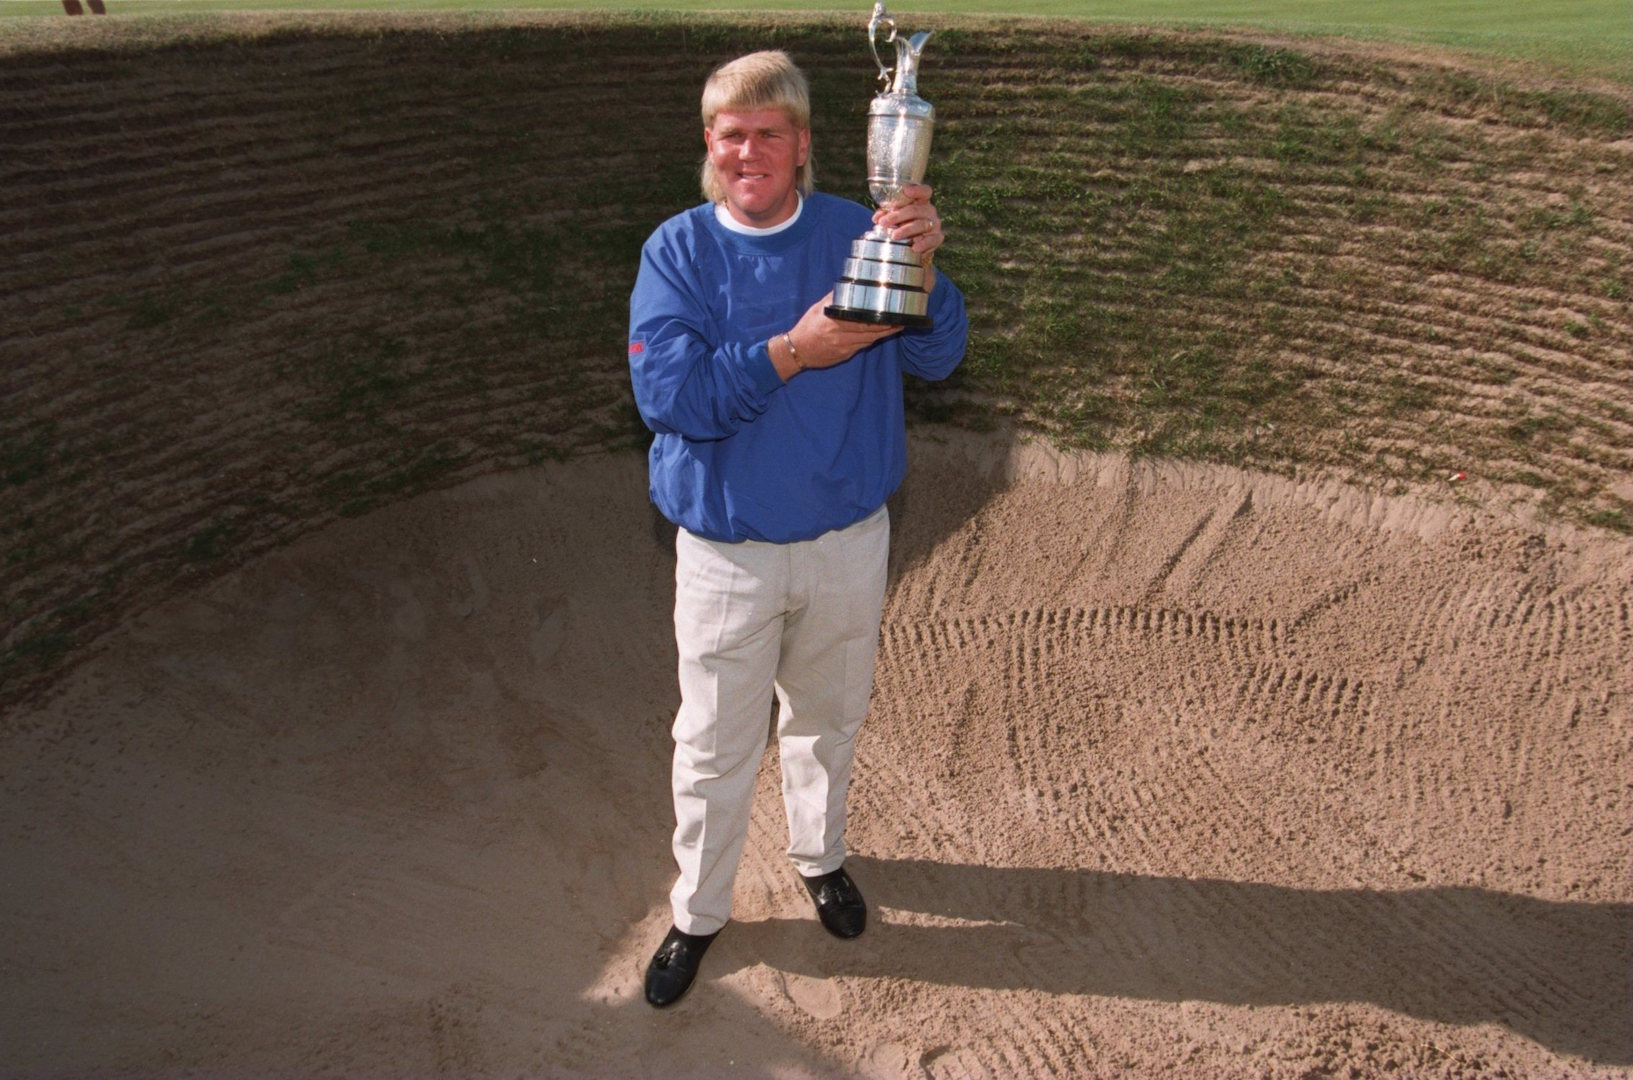 John Daly selling one of his Open replica trophies